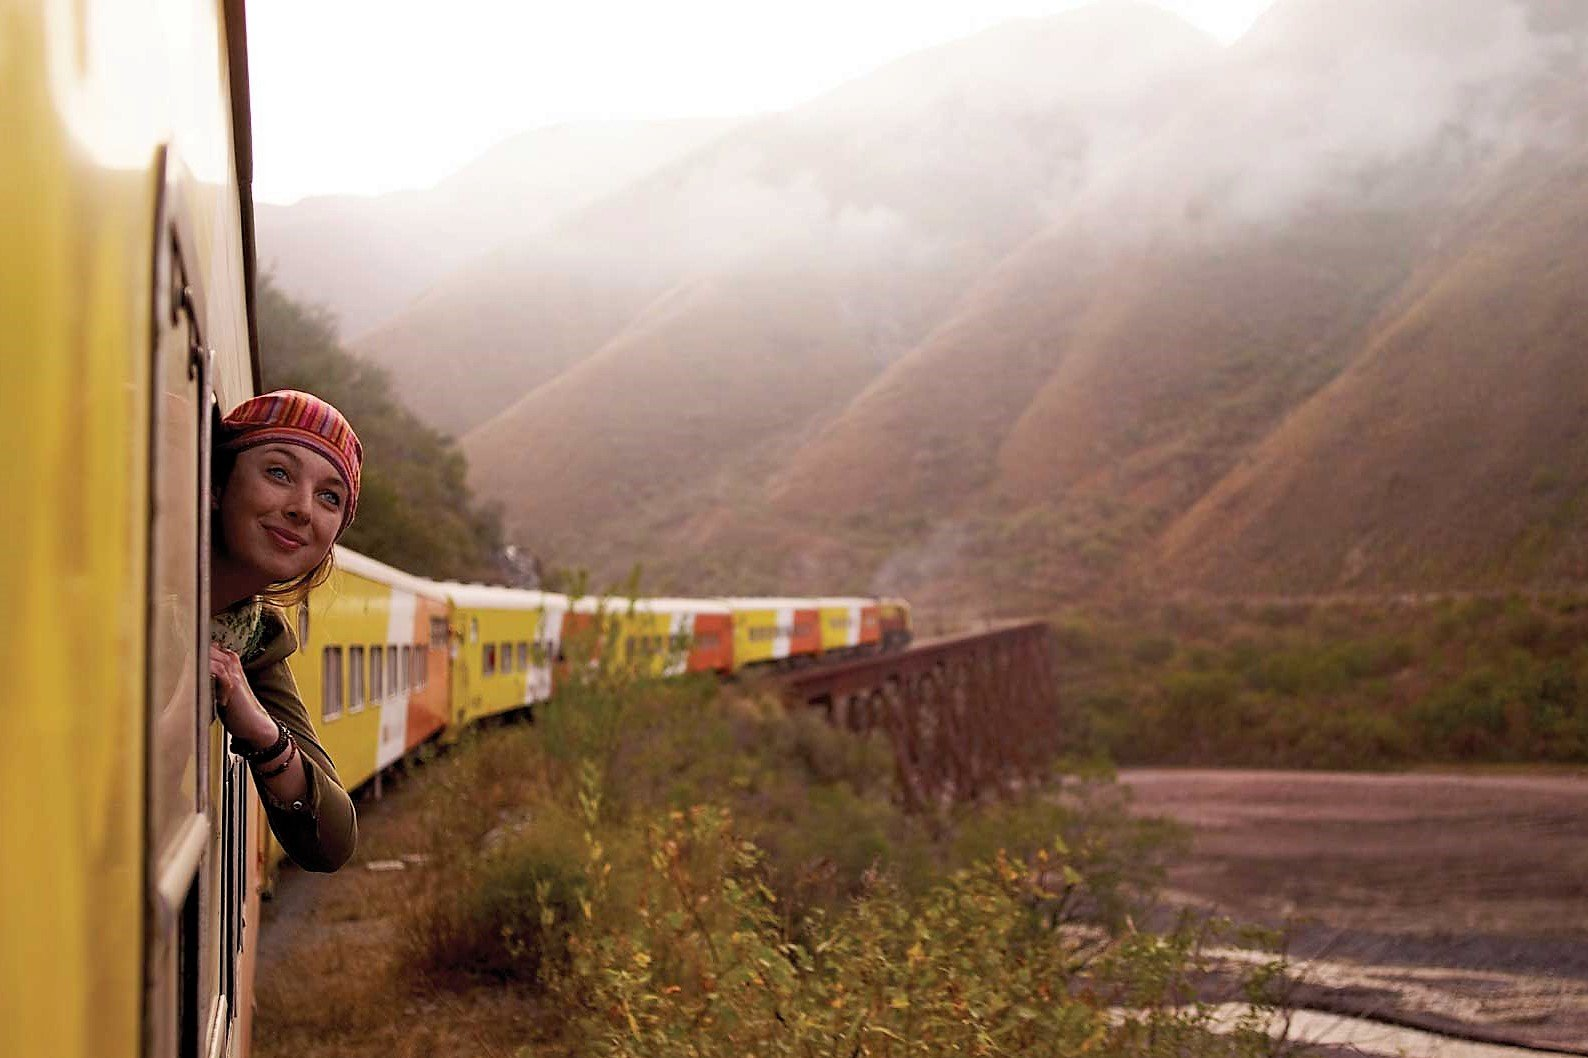 How to take a train to clouds (Tren a las nubes) in Salta